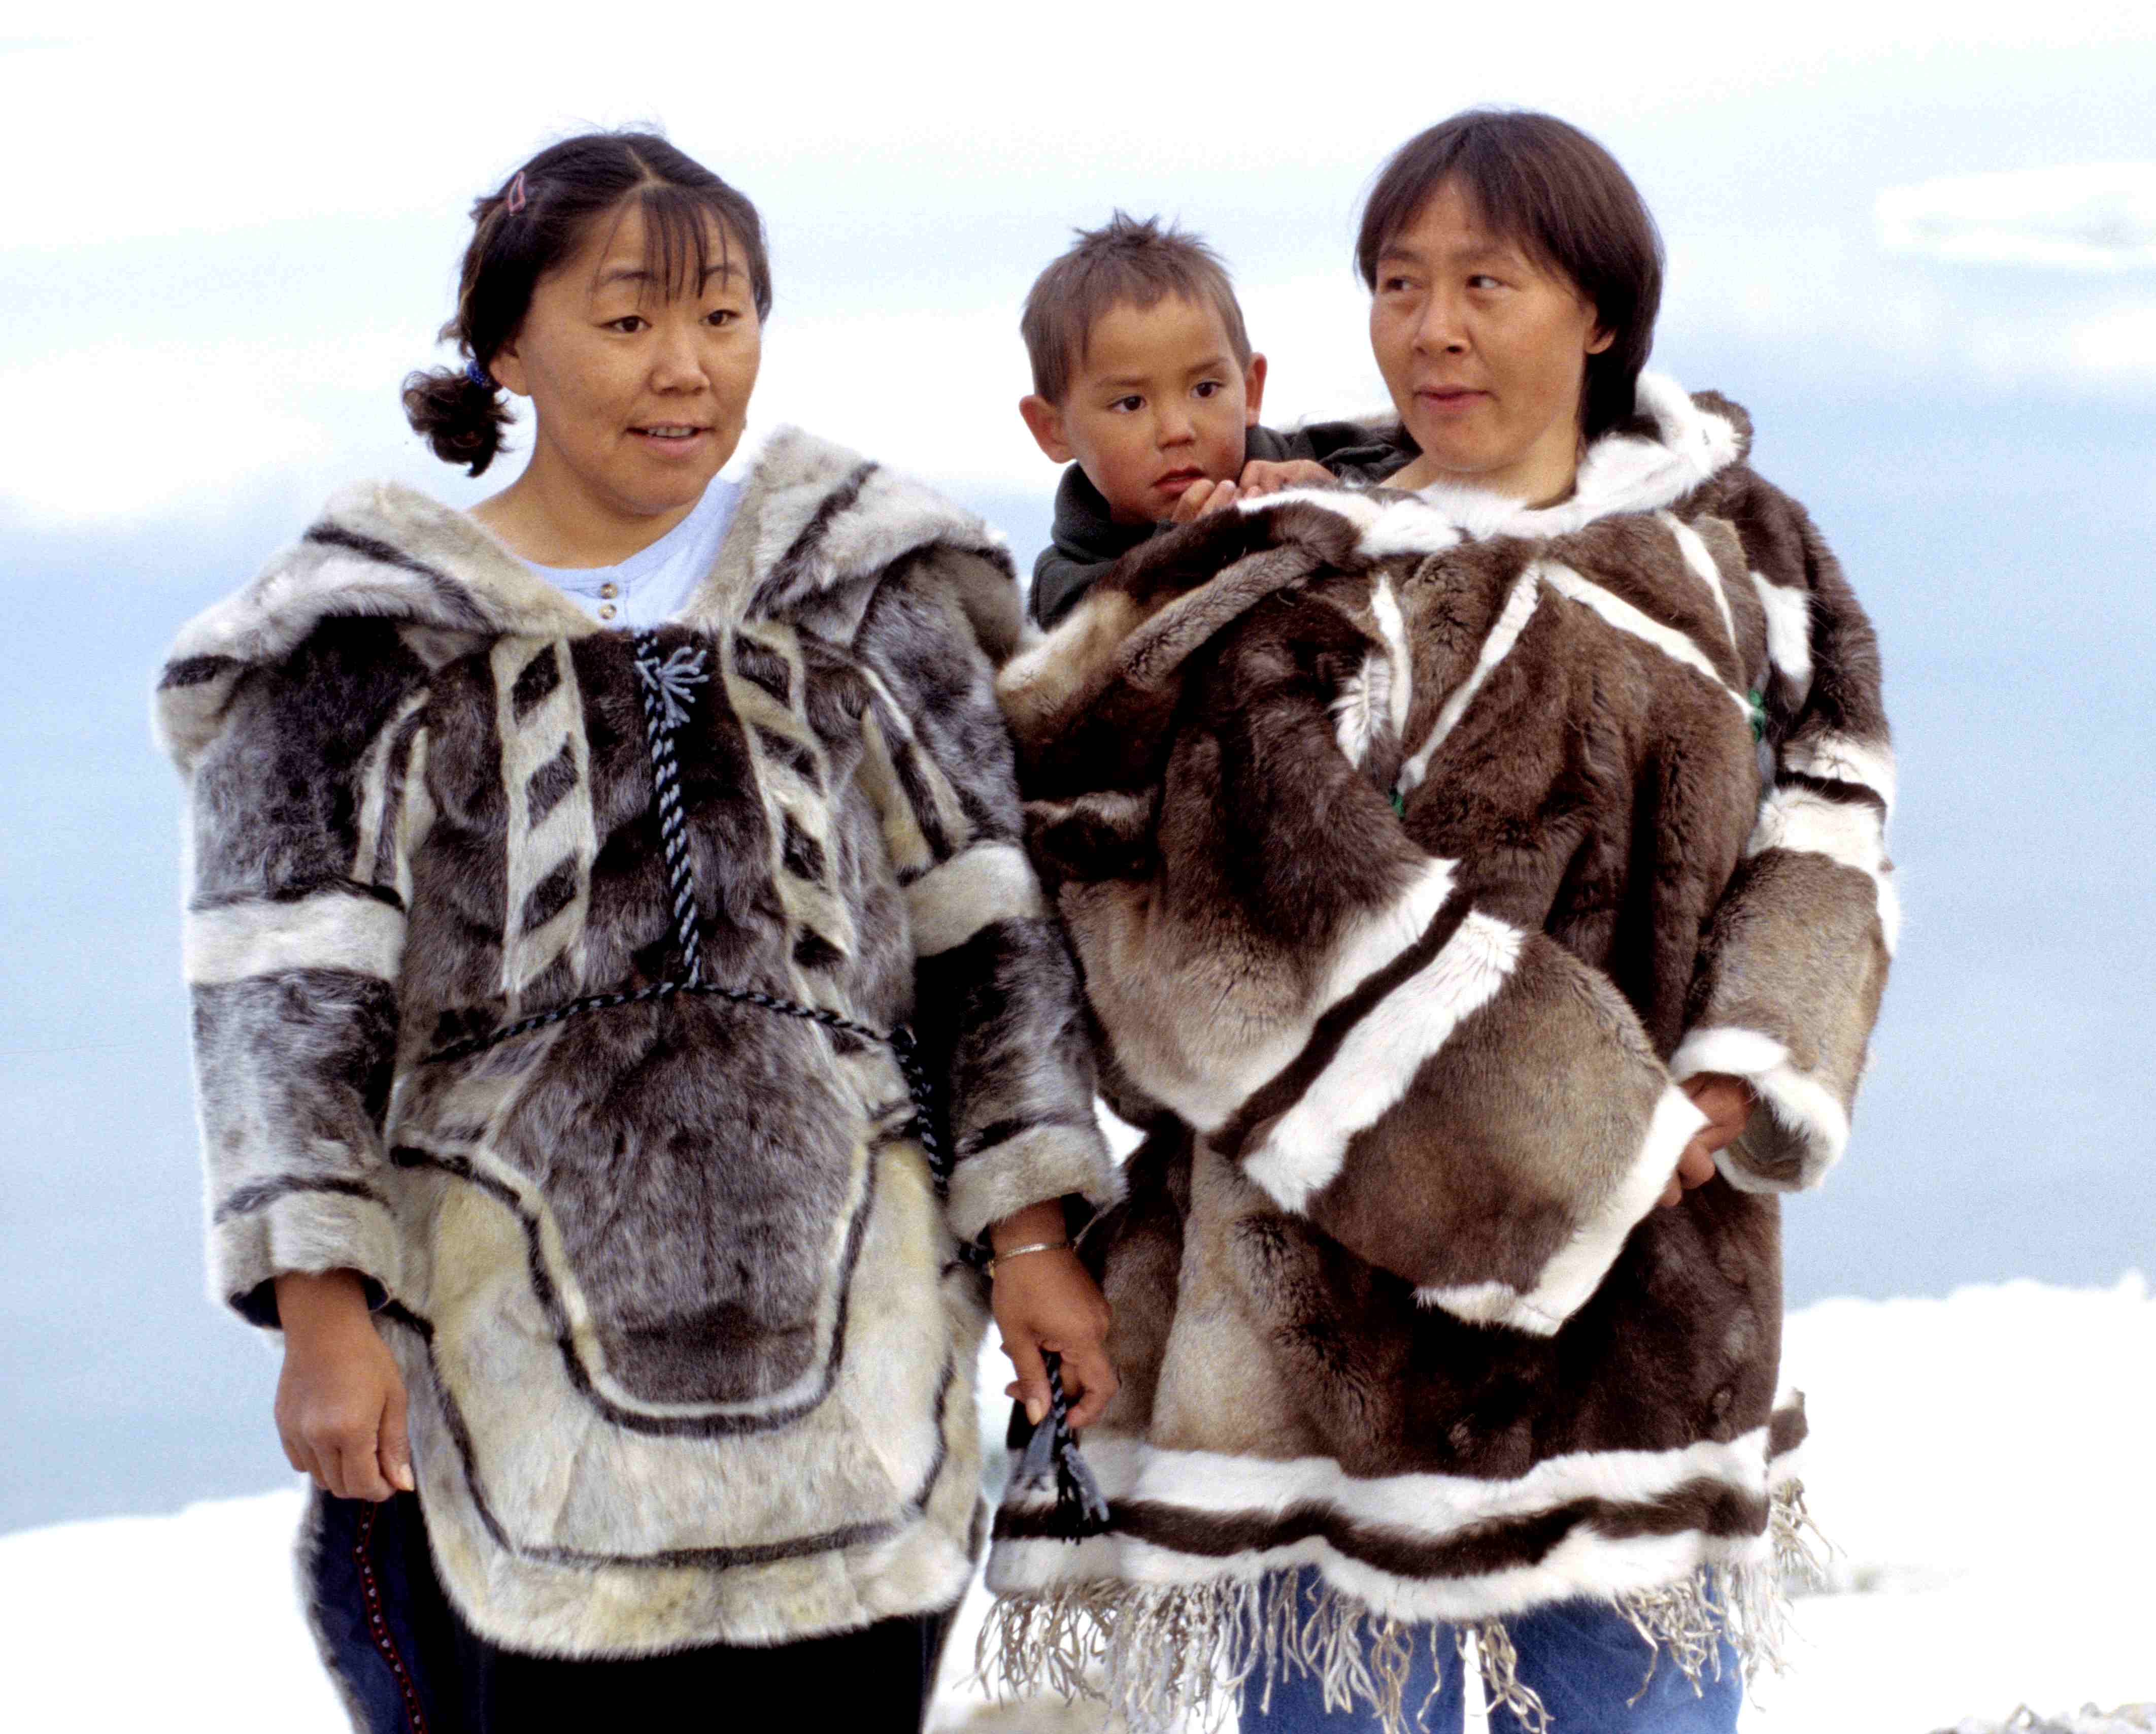 inuit-people3.jpg